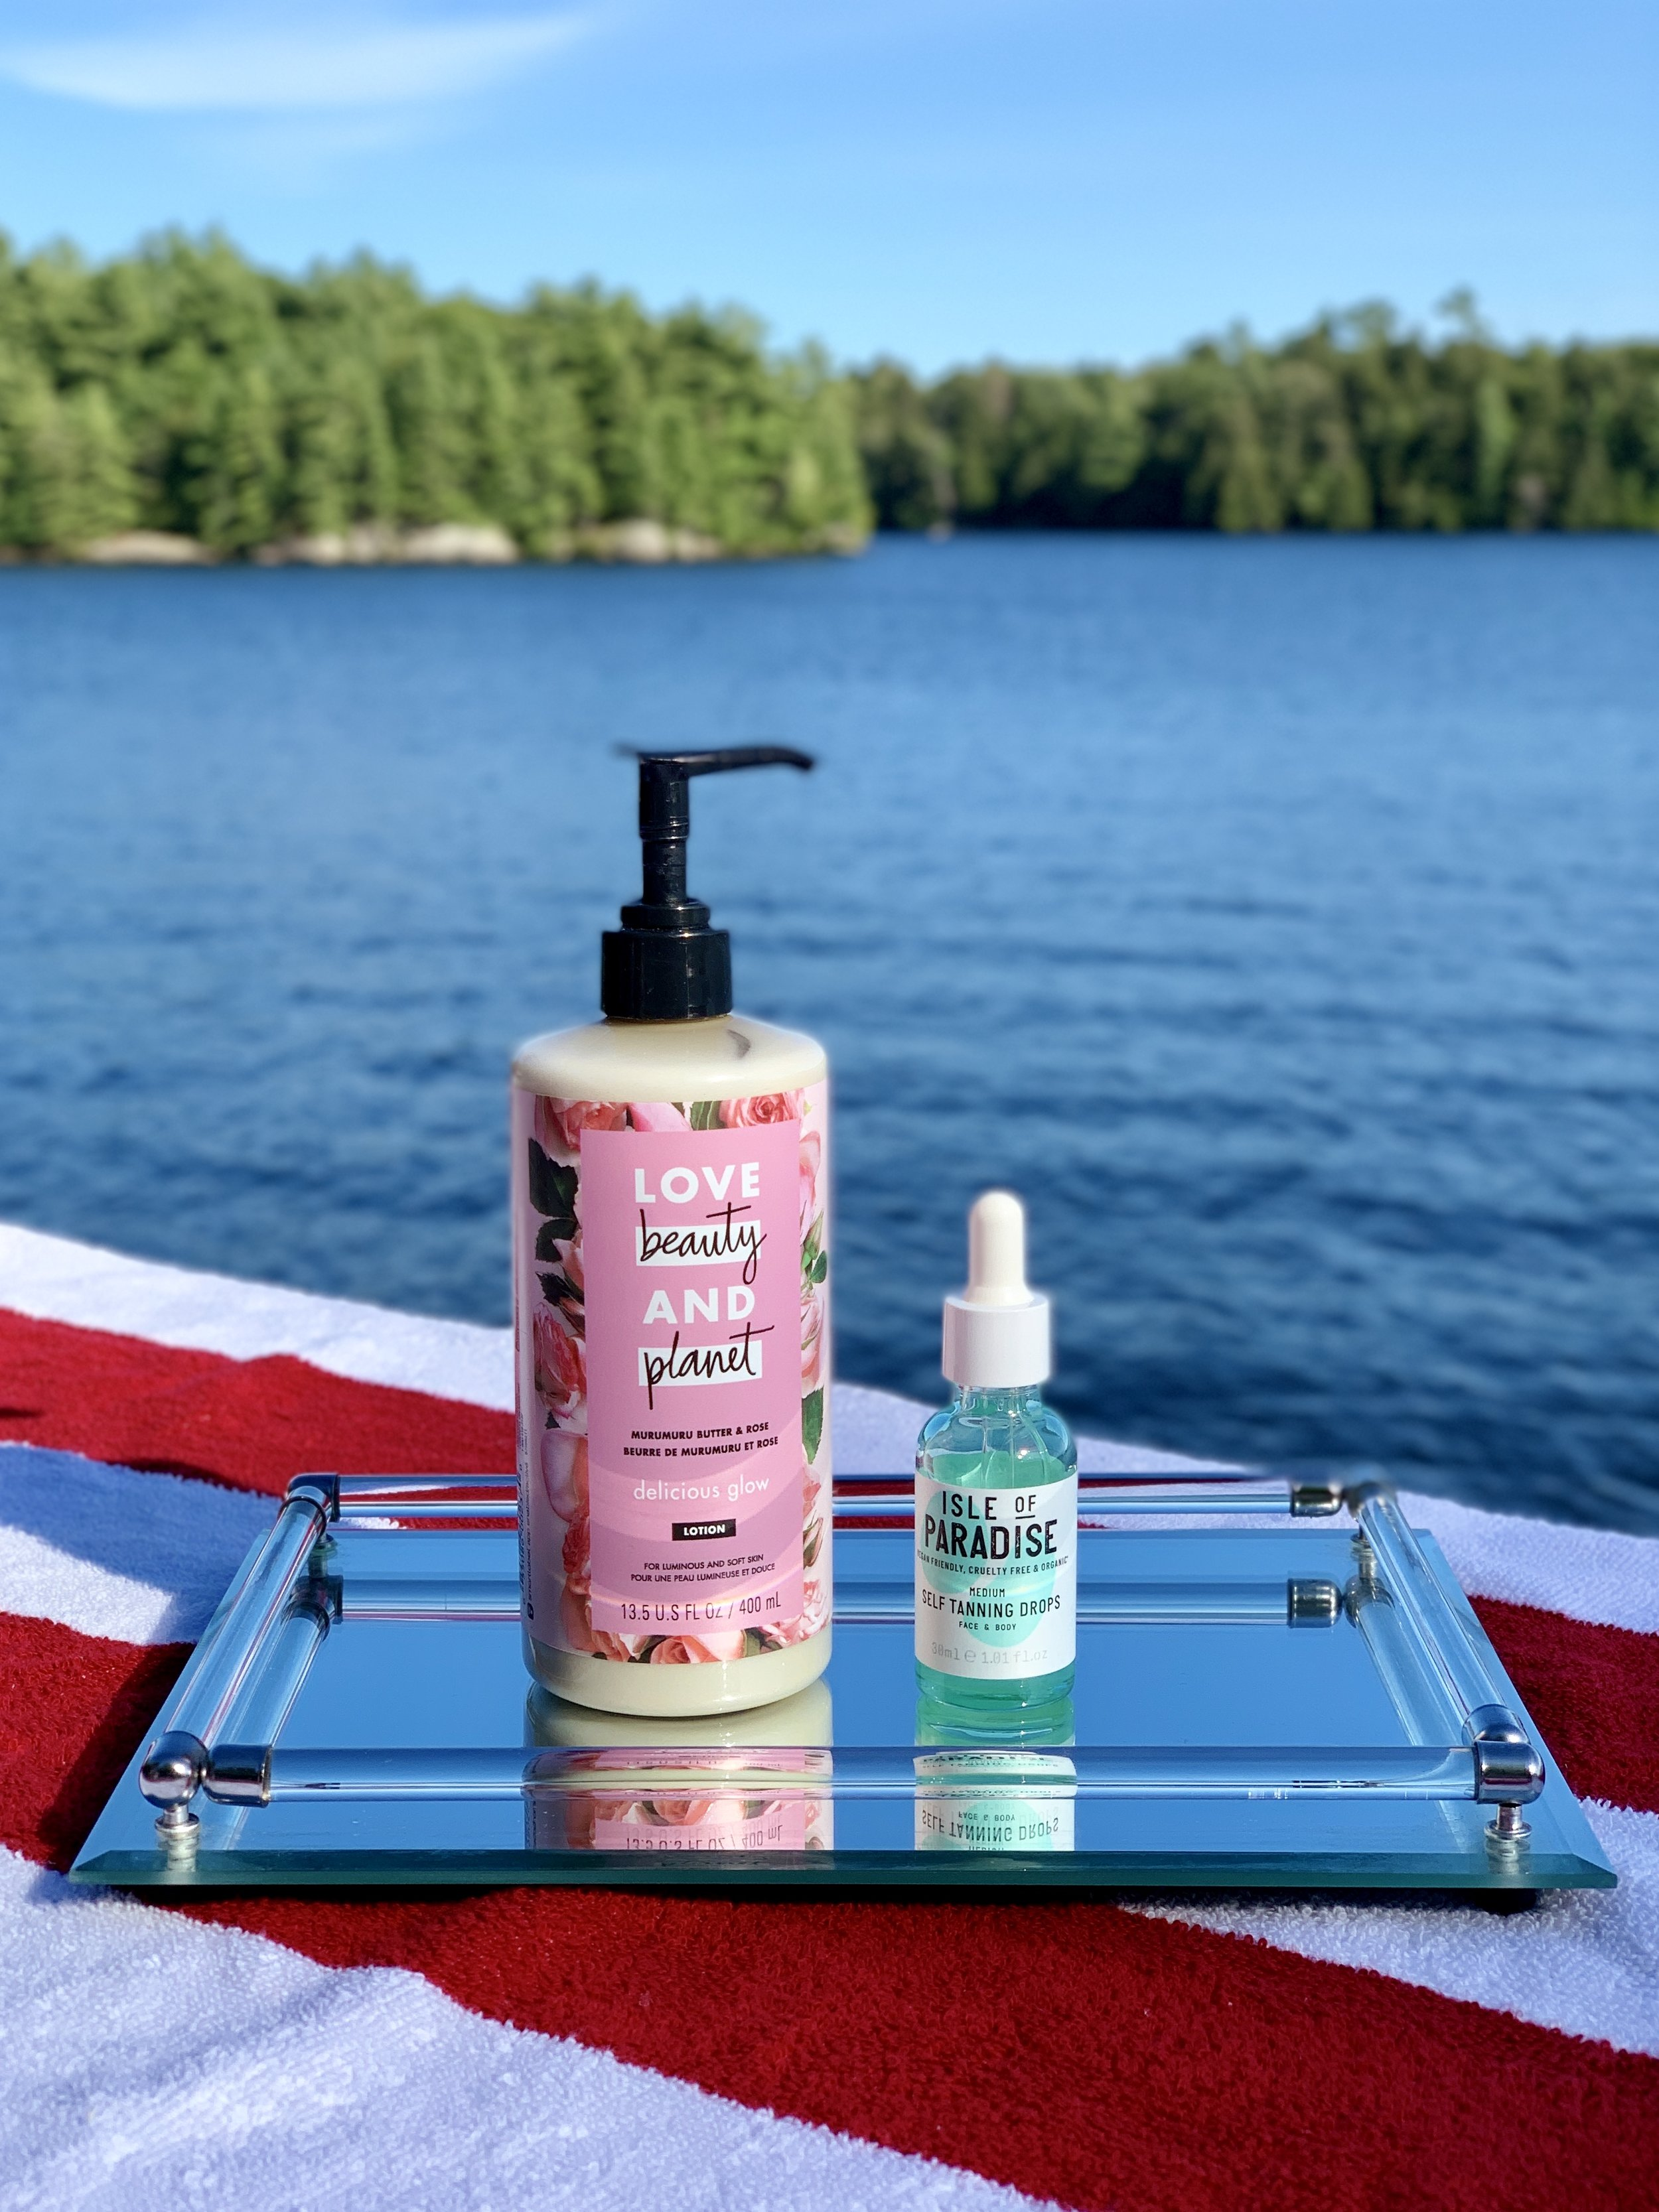 (Products L to R: Love, Beauty and Planet Murumuru Butter and Rose Lotion, Isle of Paradise Self Tanning Drops shade Medium)